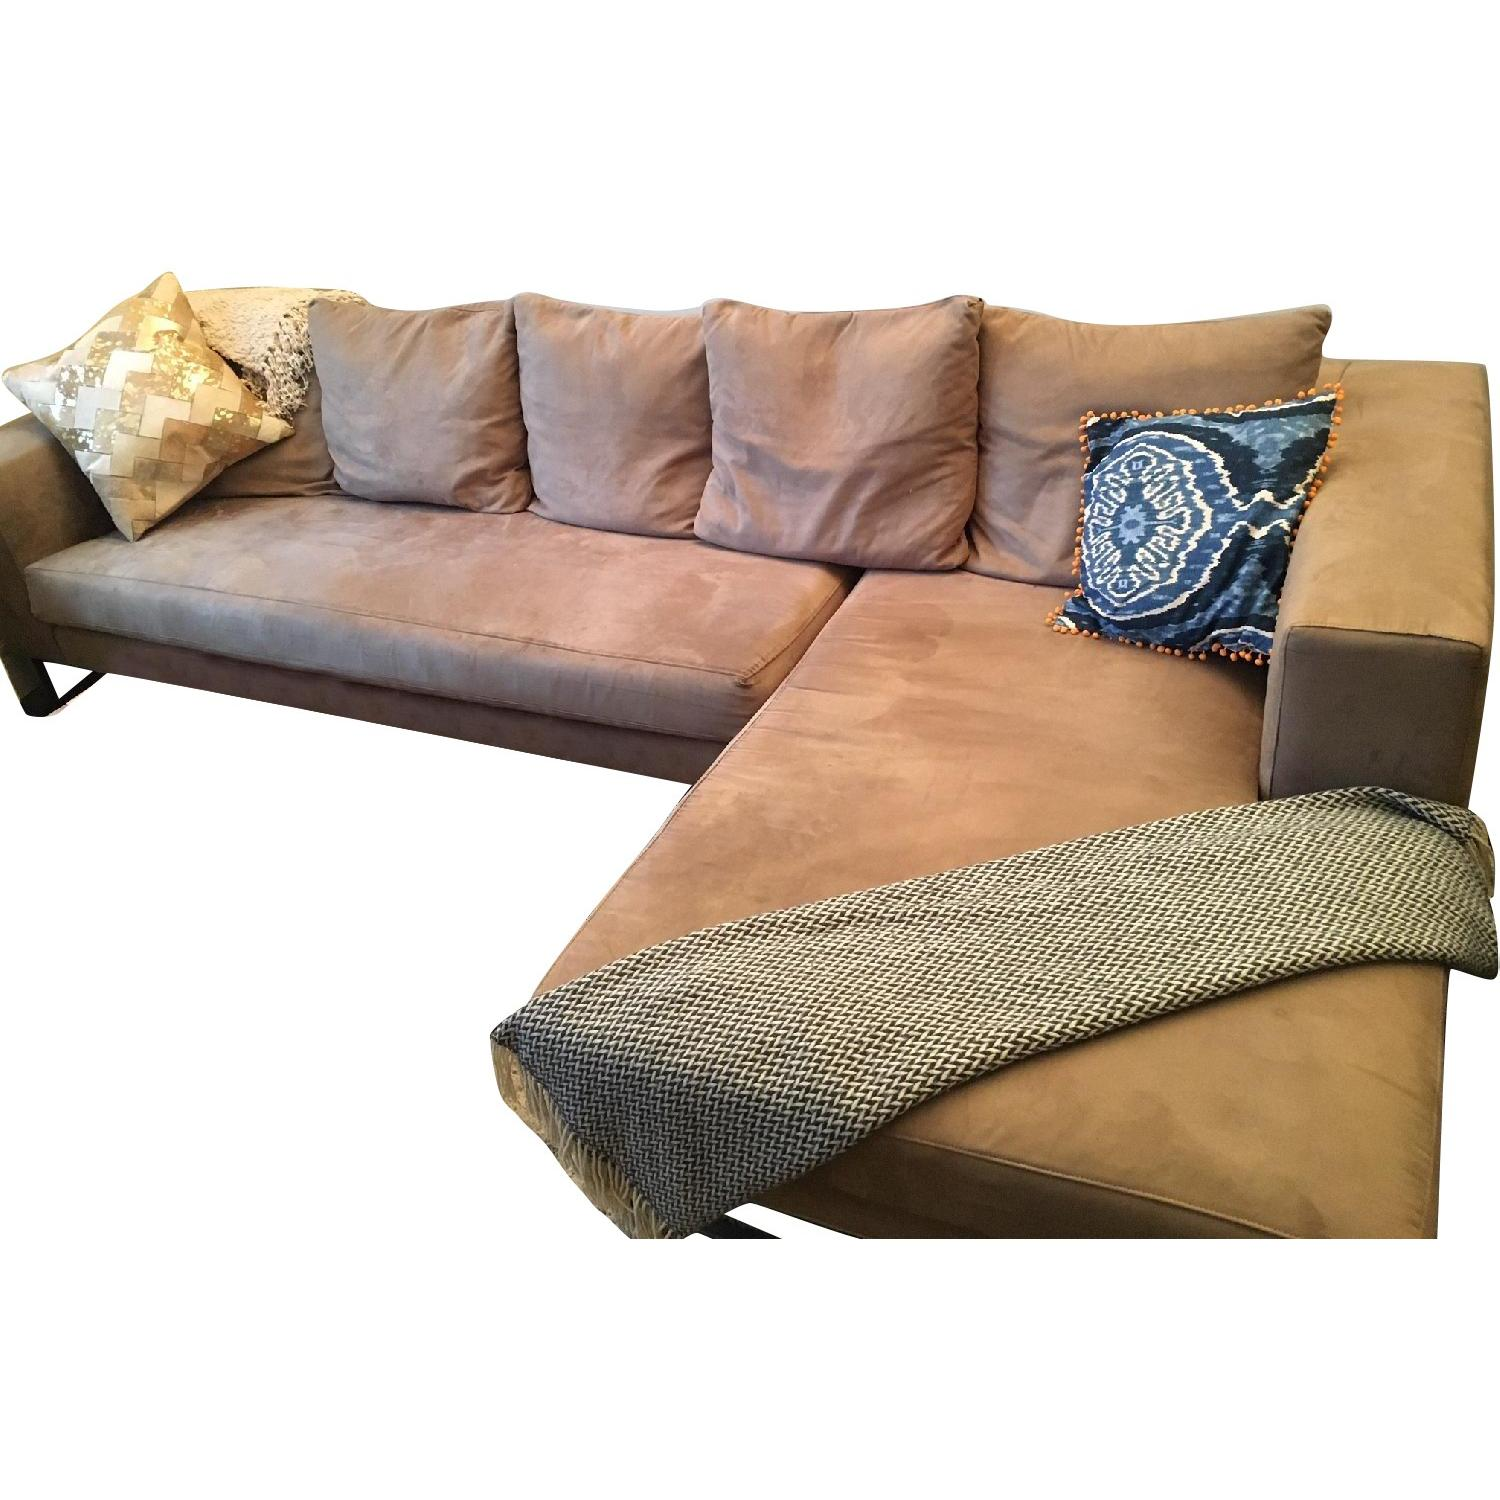 Maurice Villency 2 Piece Sectional Sofa